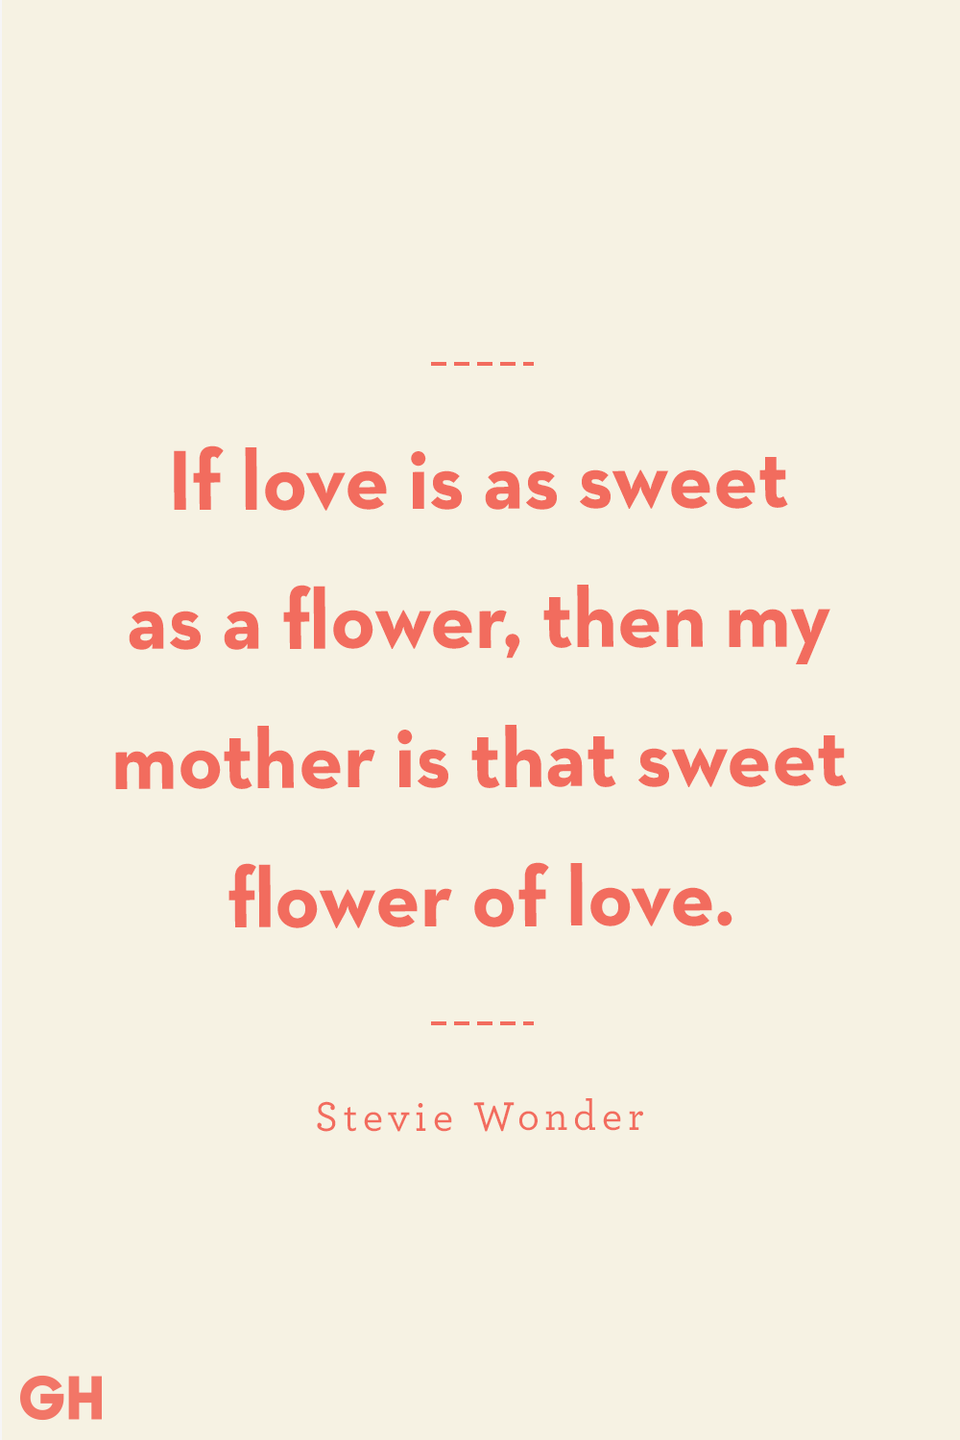 <p>If love is as sweet as a flower, then my mother is that sweet flower of love.</p>